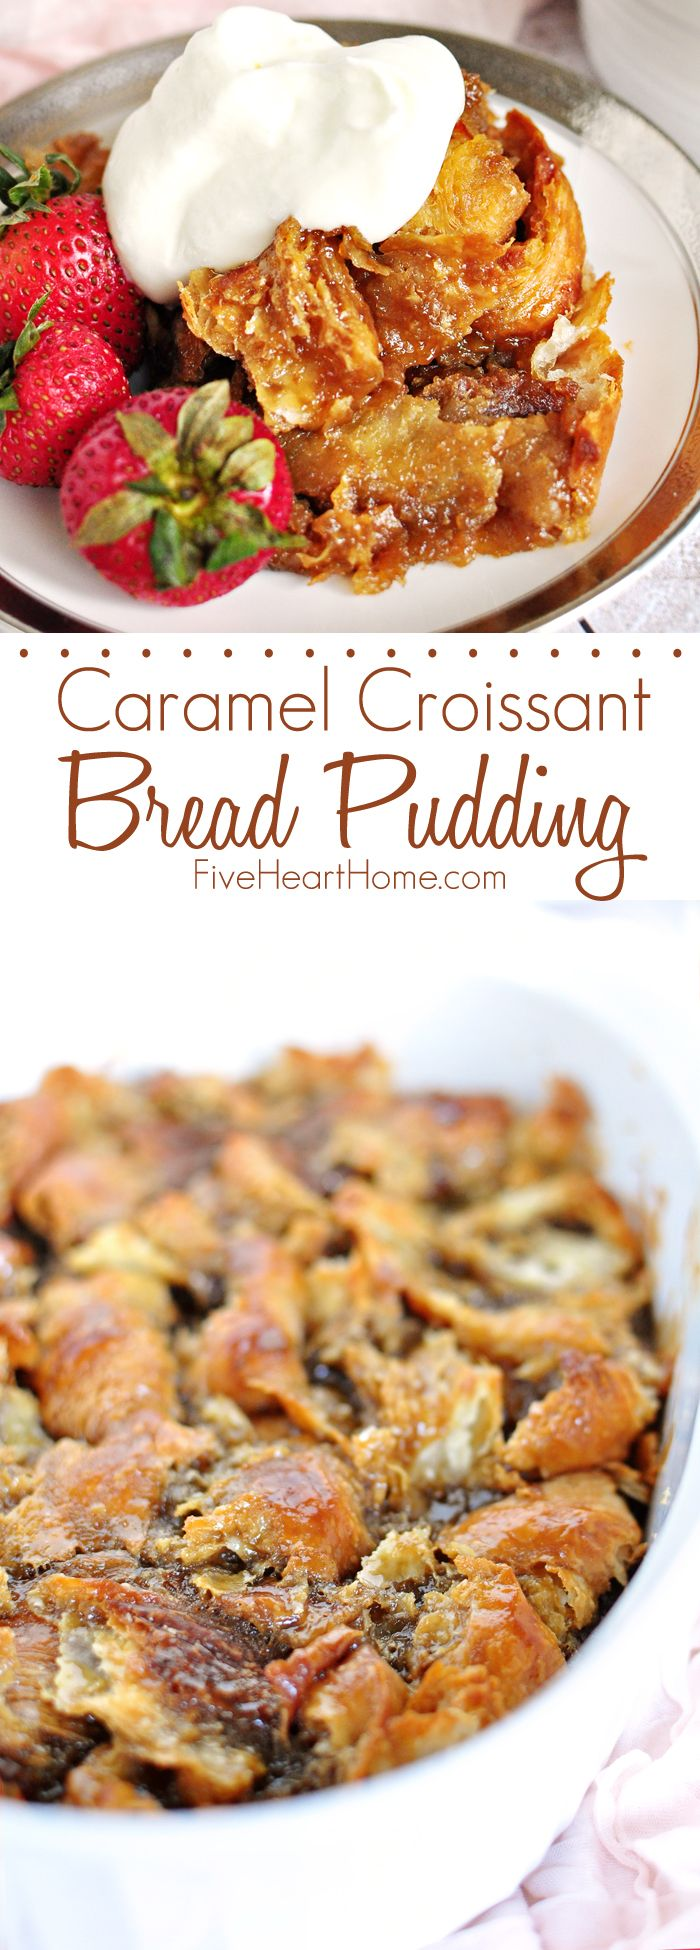 Easy Caramel Croissant Bread Pudding ~ this simple yet decadent dessert features a homemade, 5-minute caramel sauce and leftover buttery croissants | FiveHeartHome.com